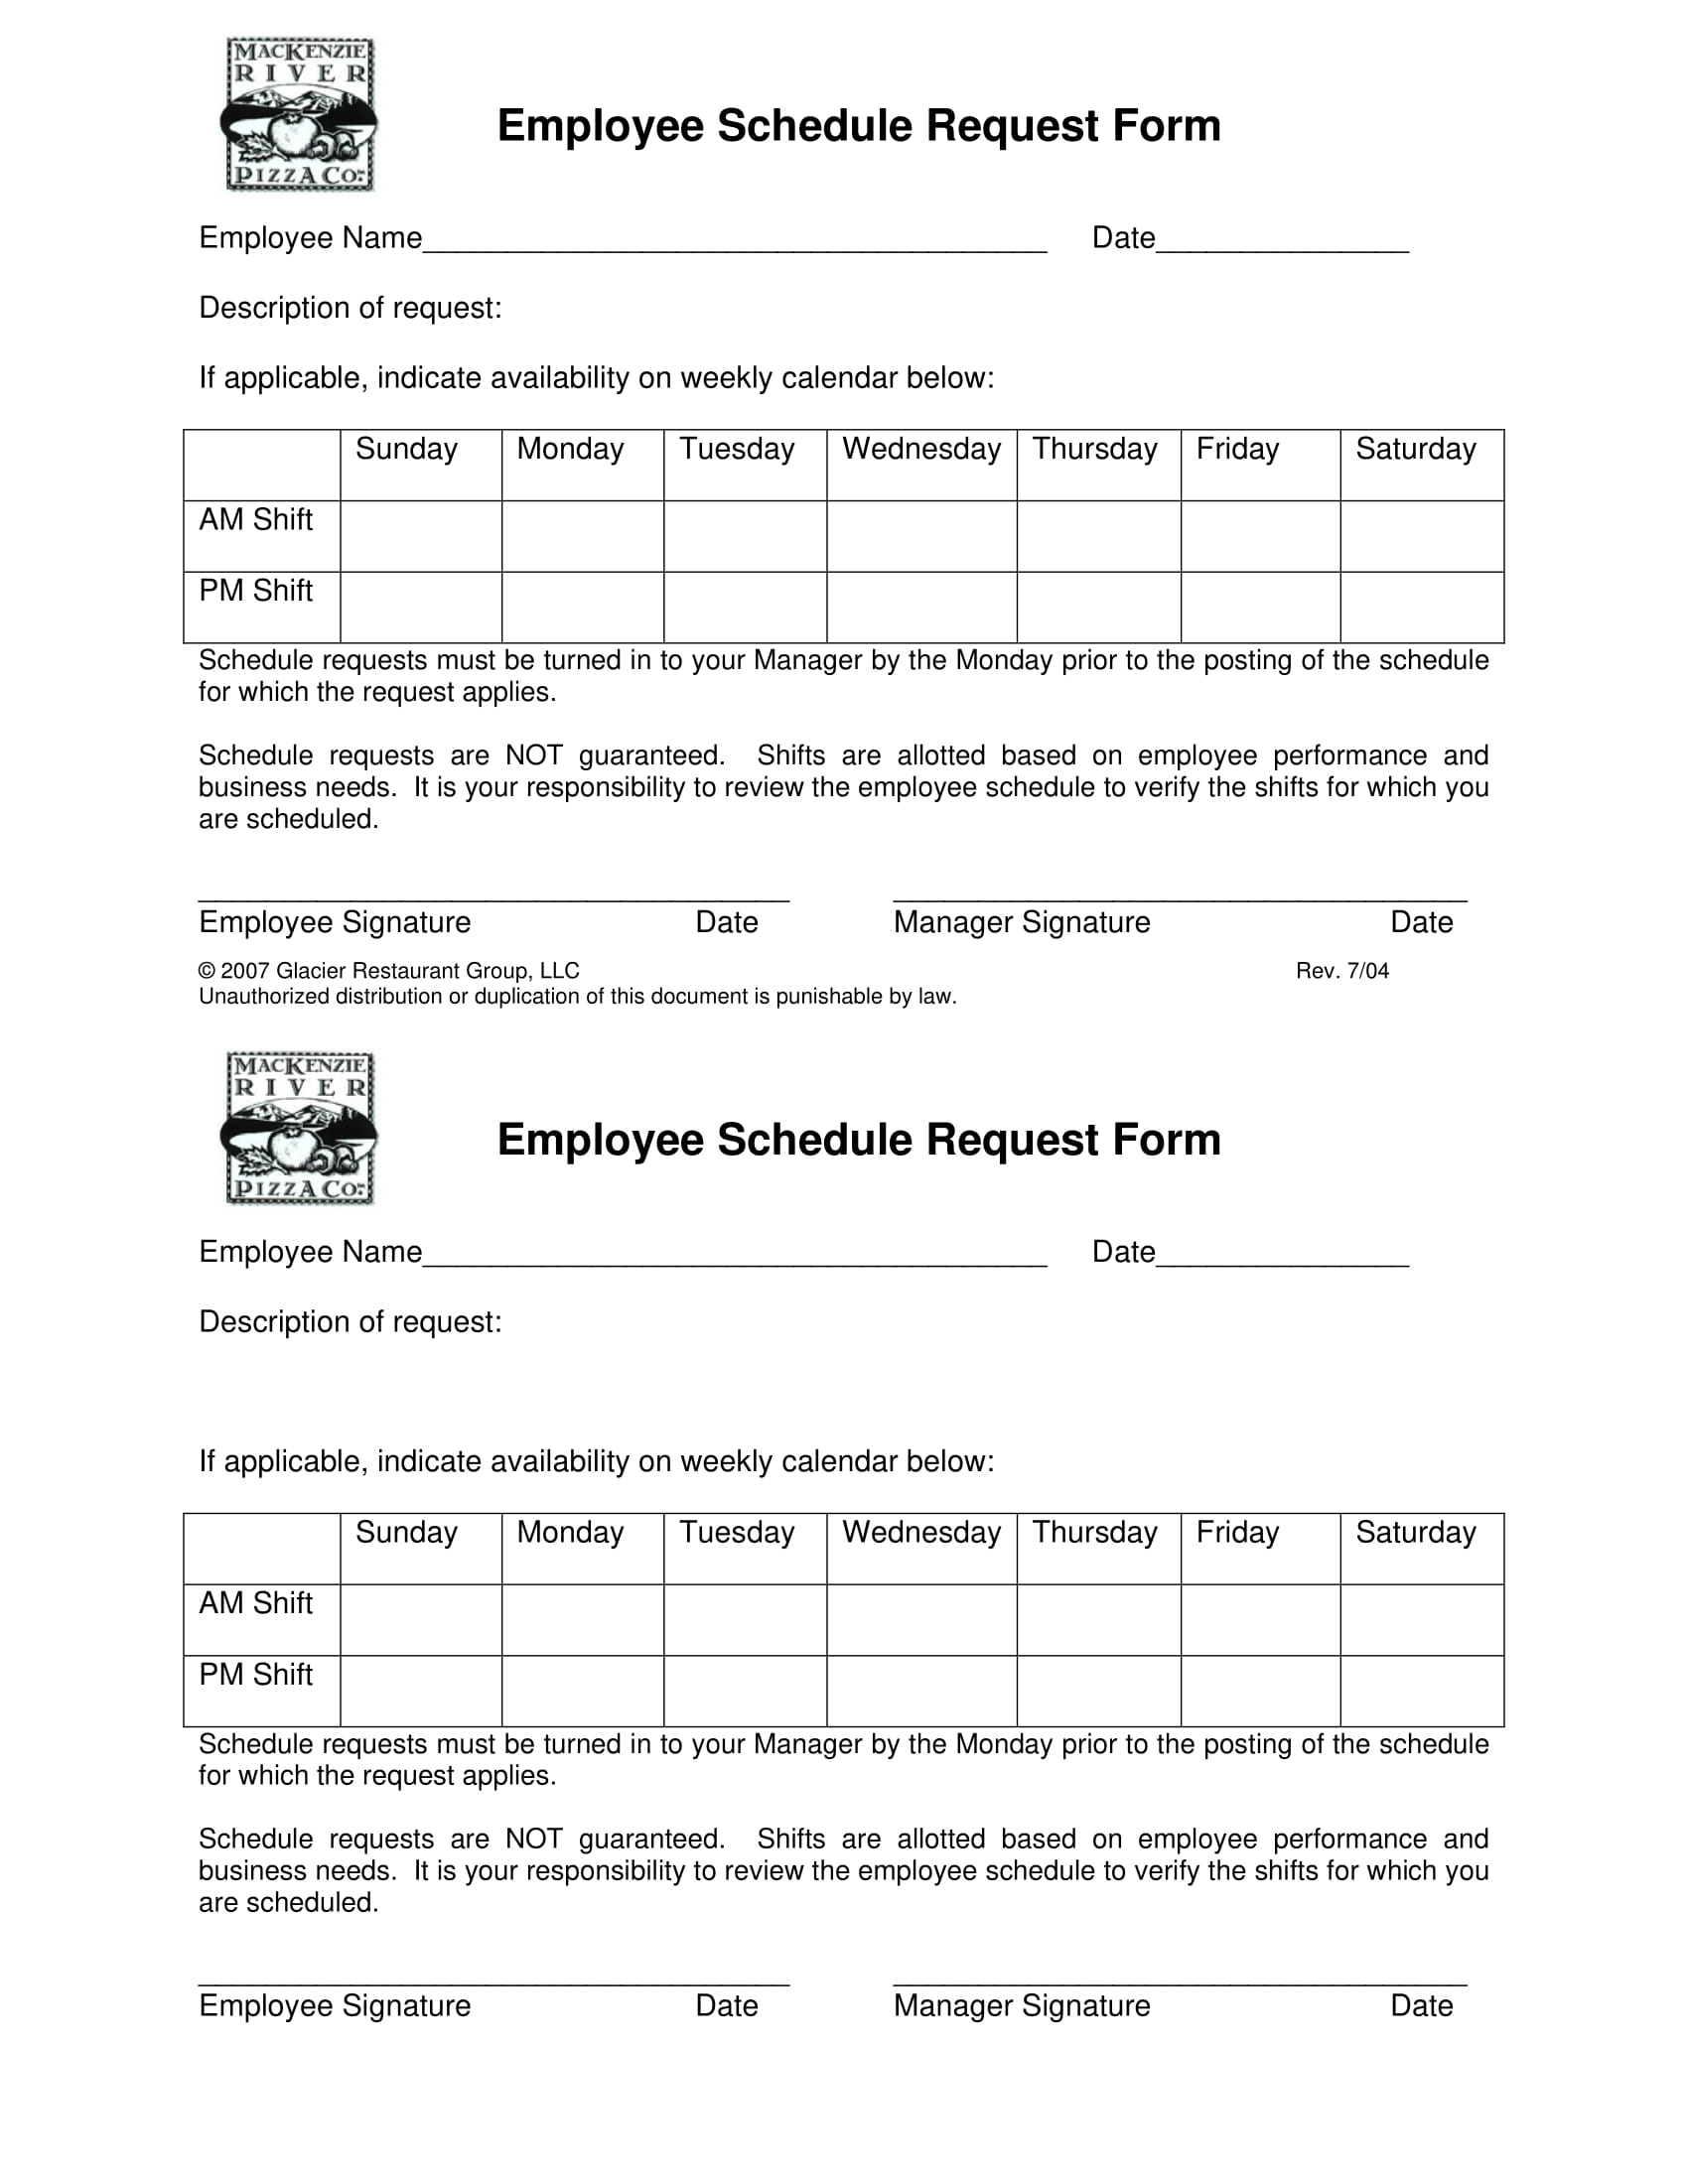 employee schedule request form 1